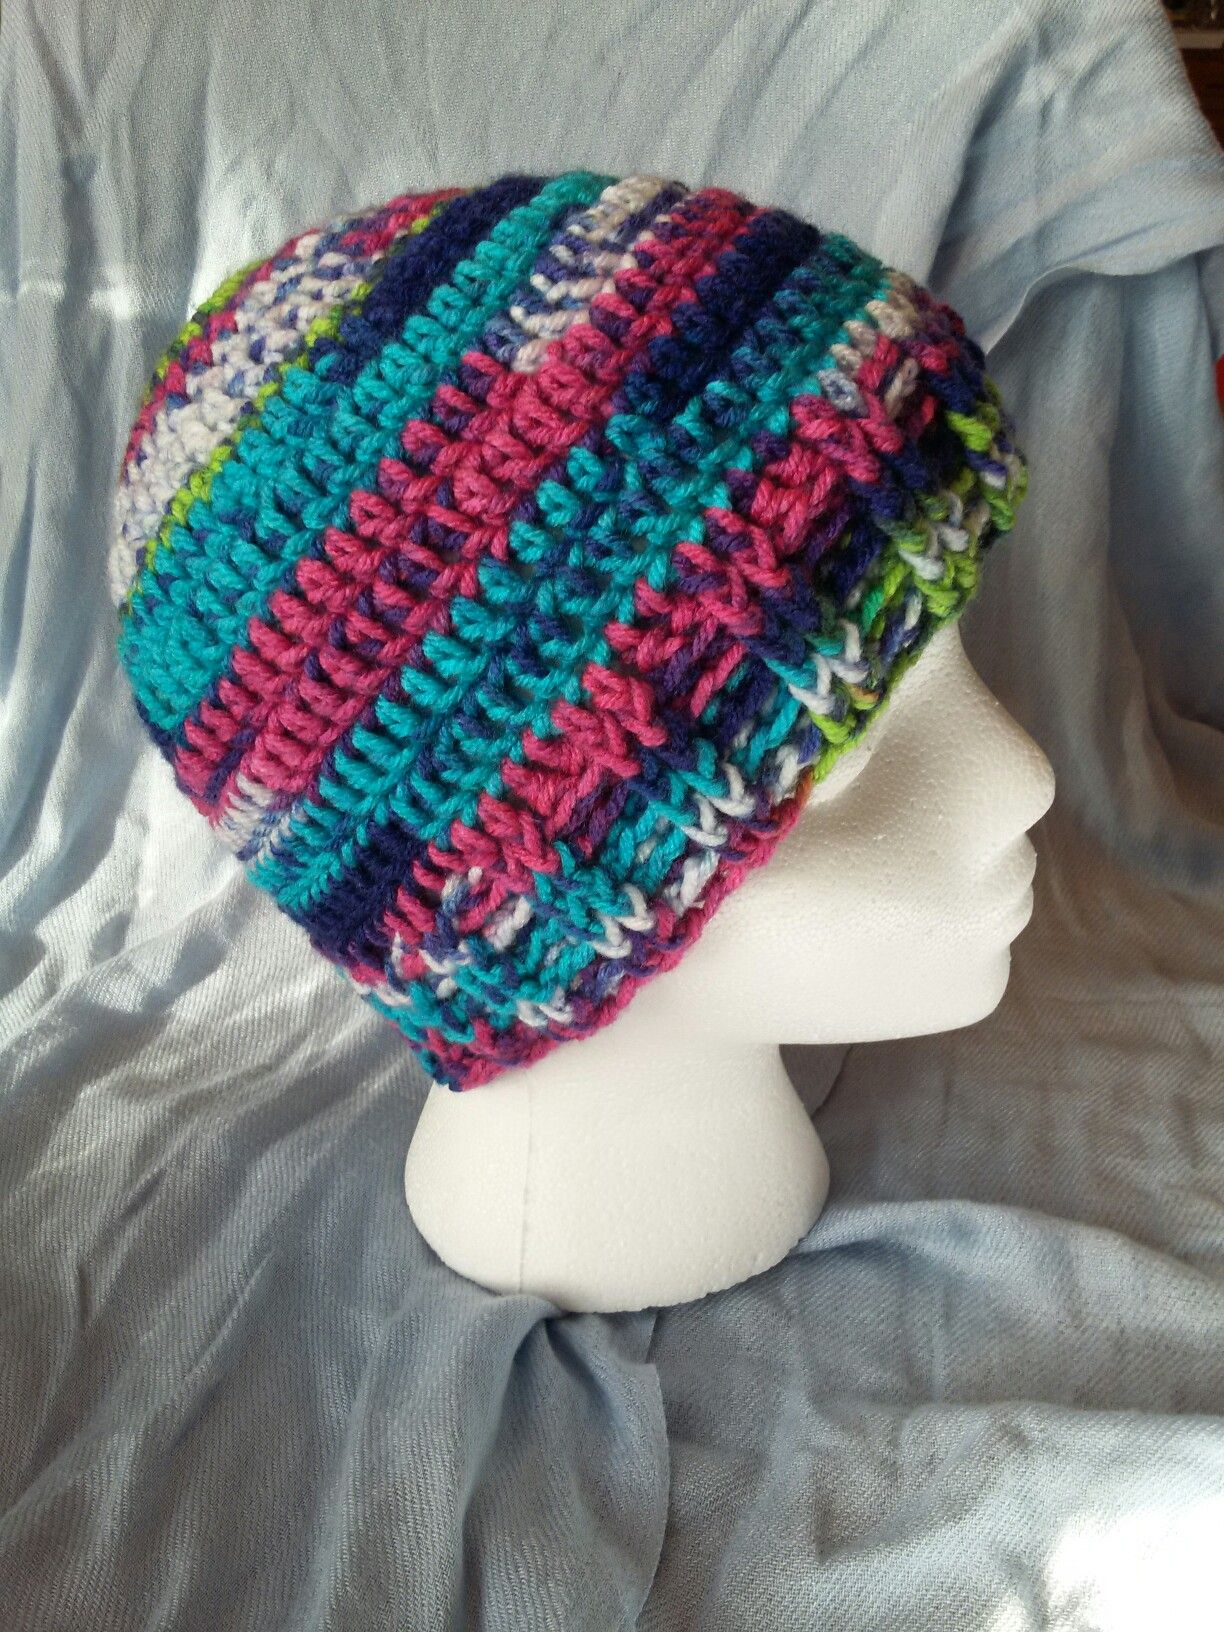 My first ponytail hat/beanie.  Basic pattern found on Ravelry by Jessica King Crochets.  Yarn from Hobby Lobby which I fell in love with.  I have posted several views.  Putting it on differently can give you a whole new look.  I used a stretchy pony tail holder on the top.